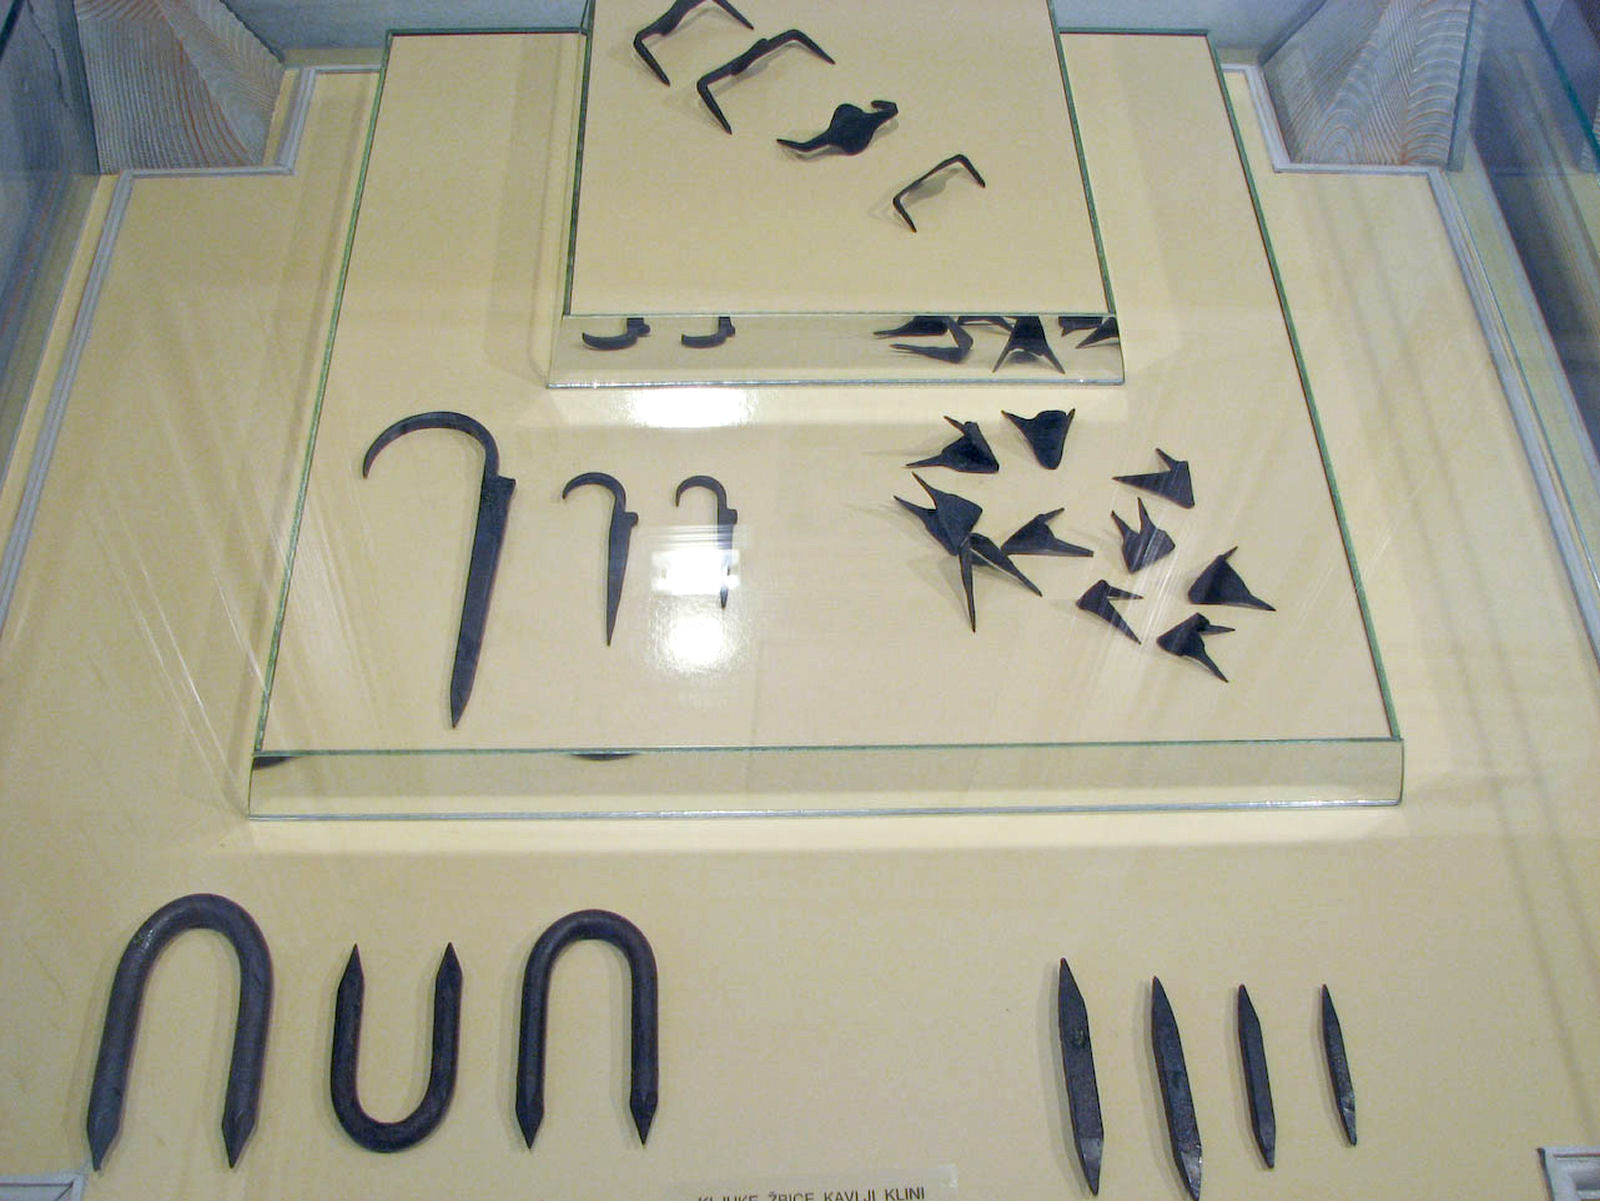 A collection of nails in the Iron Forging Museum in Kropa, Slovenia